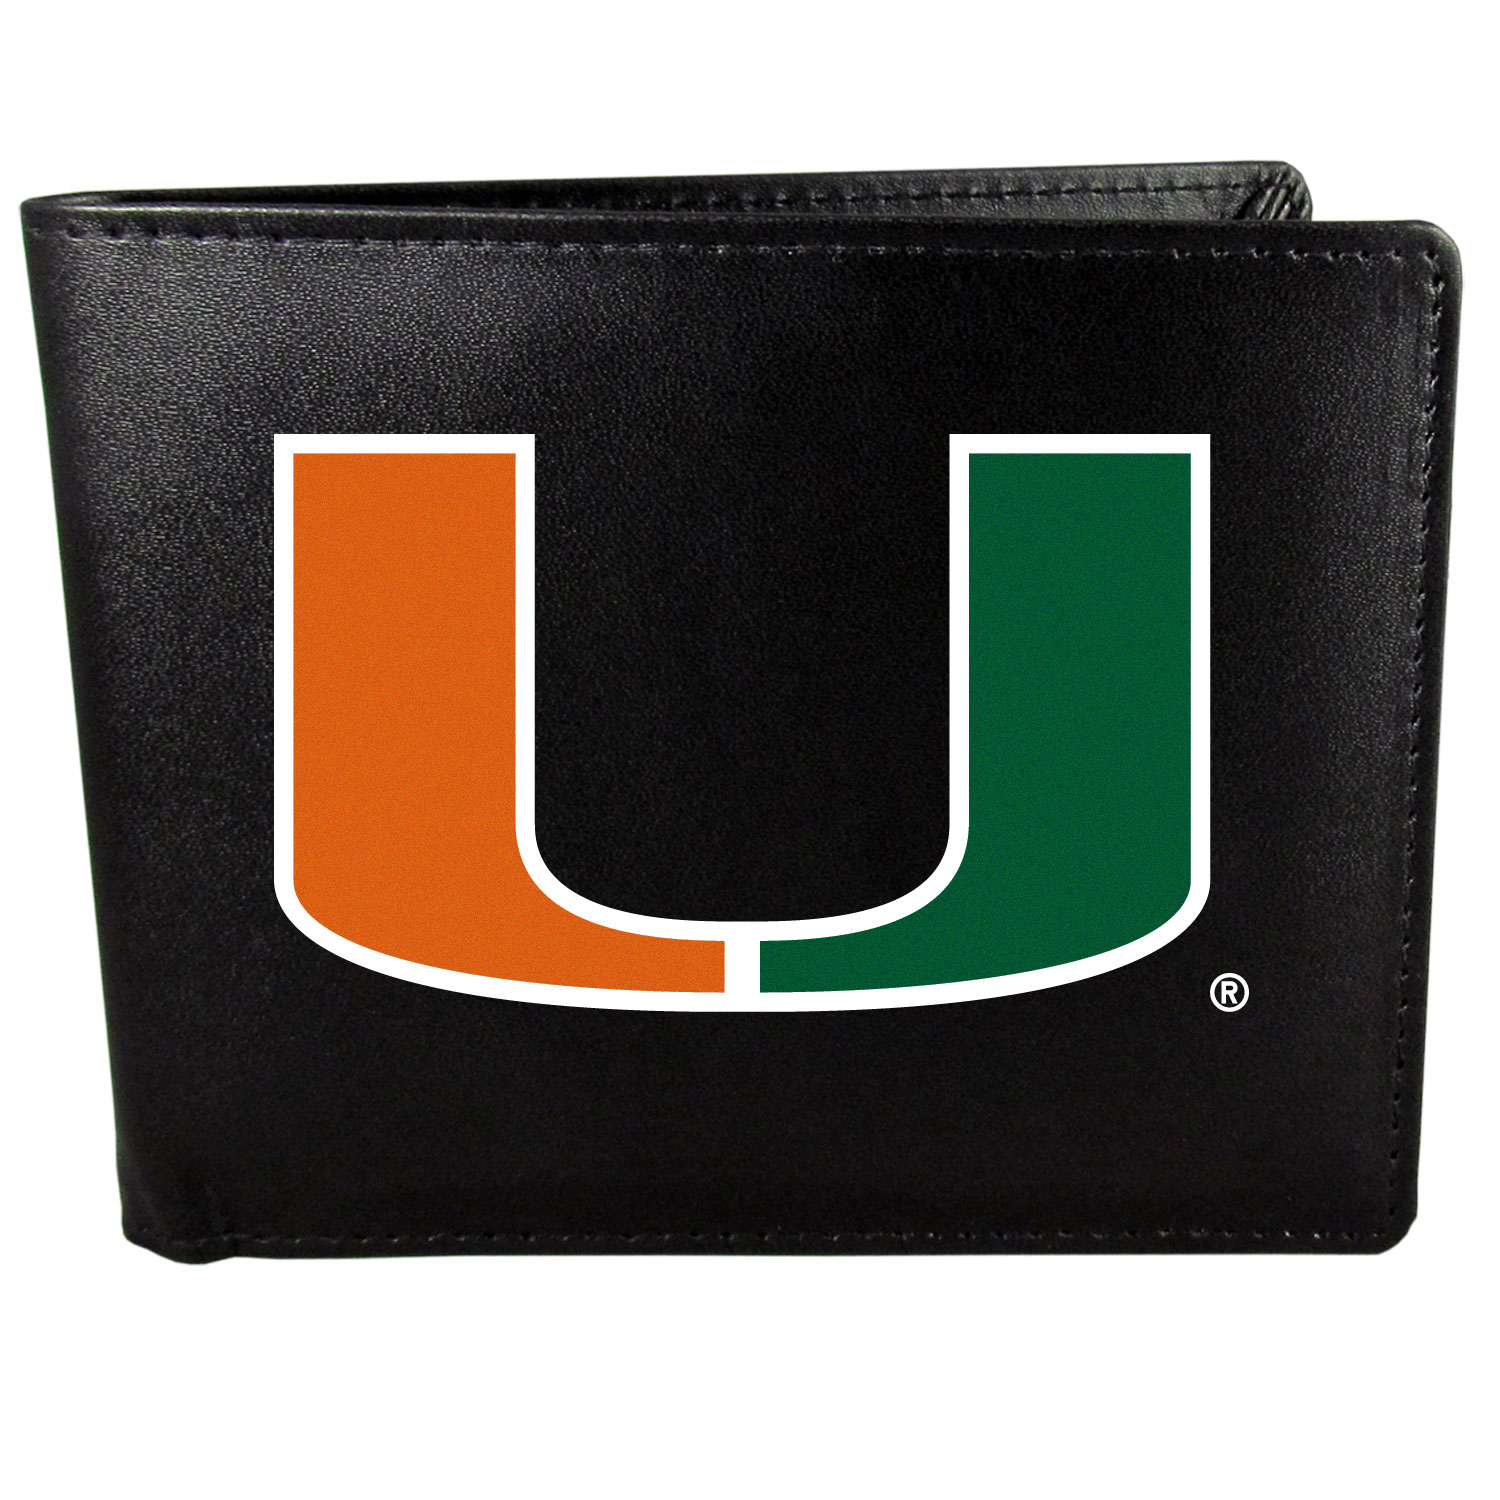 Miami Hurricanes Leather Bi-fold Wallet, Large Logo - Our classic fine leather bi-fold wallet is meticulously crafted with genuine leather that will age beautifully so you will have a quality wallet for years to come. The wallet opens to a large, billfold pocket and numerous credit card slots and has a convenient windowed ID slot. The front of the wallet features an extra large Miami Hurricanes printed logo.